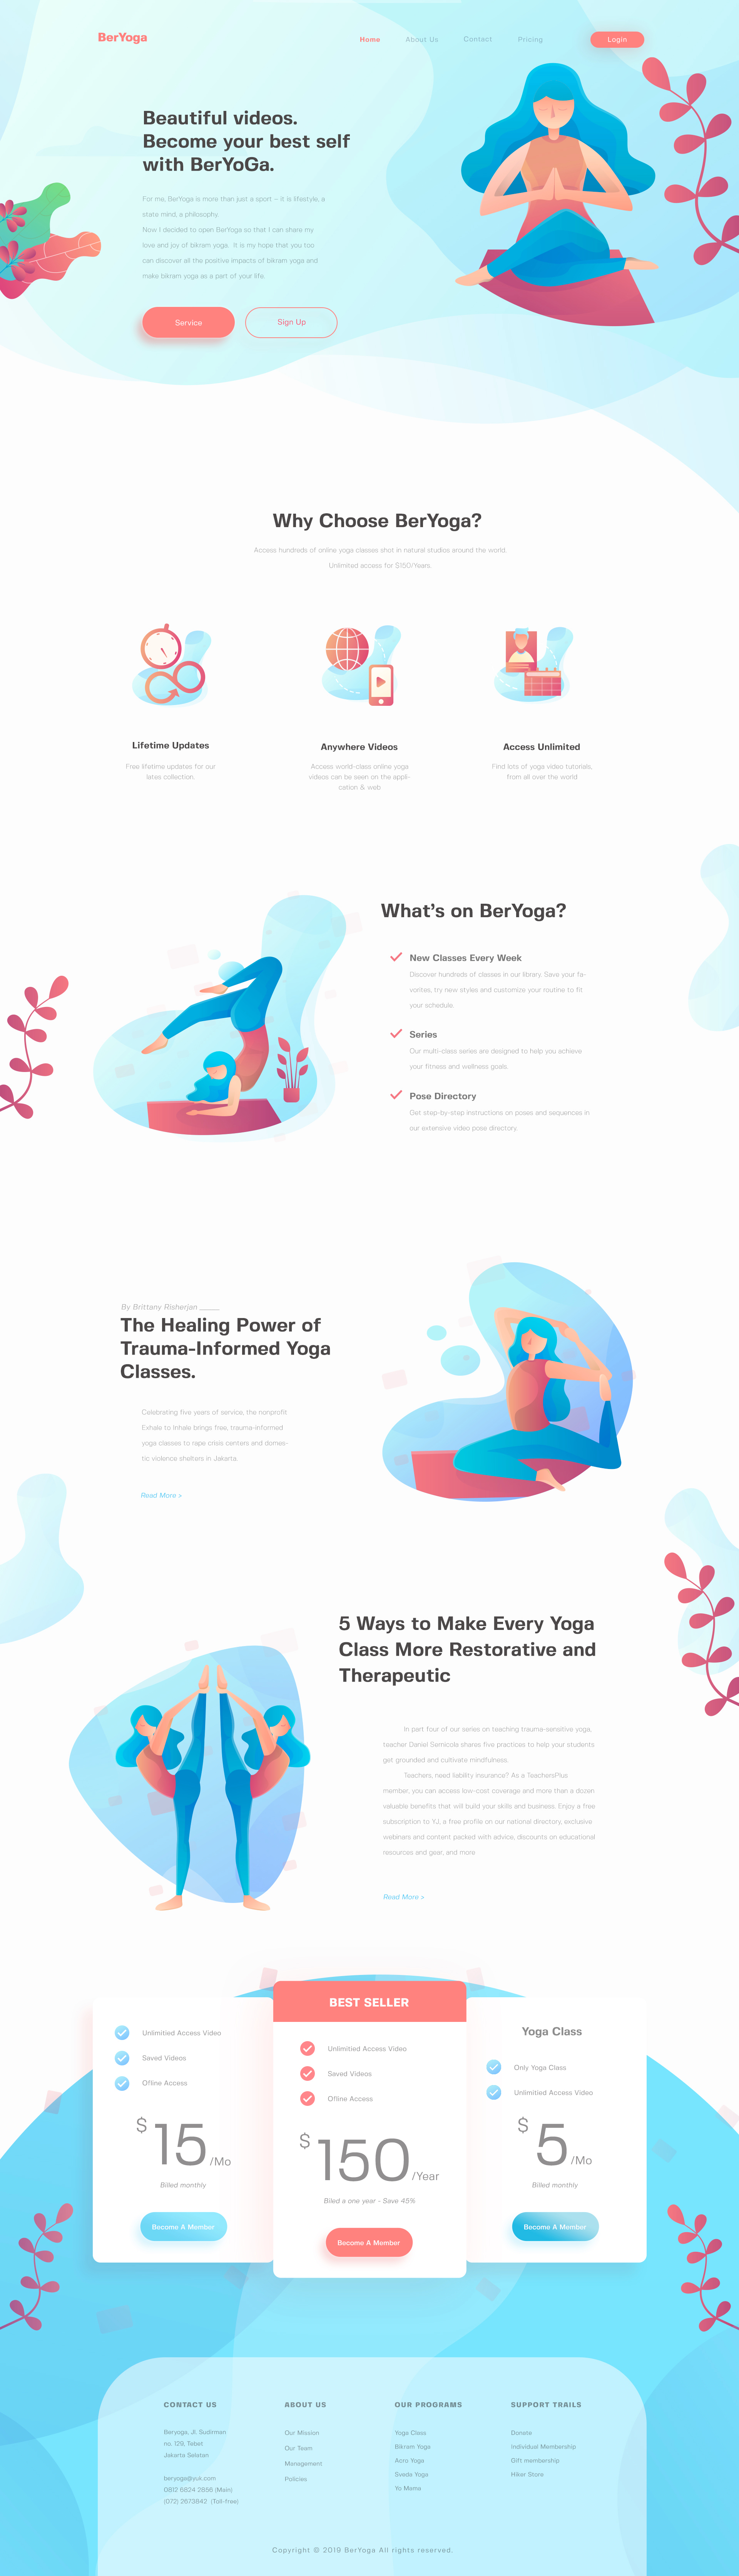 BerYoga - Yoga Landing Page - Elegant and clean landing page design with cool illustration.